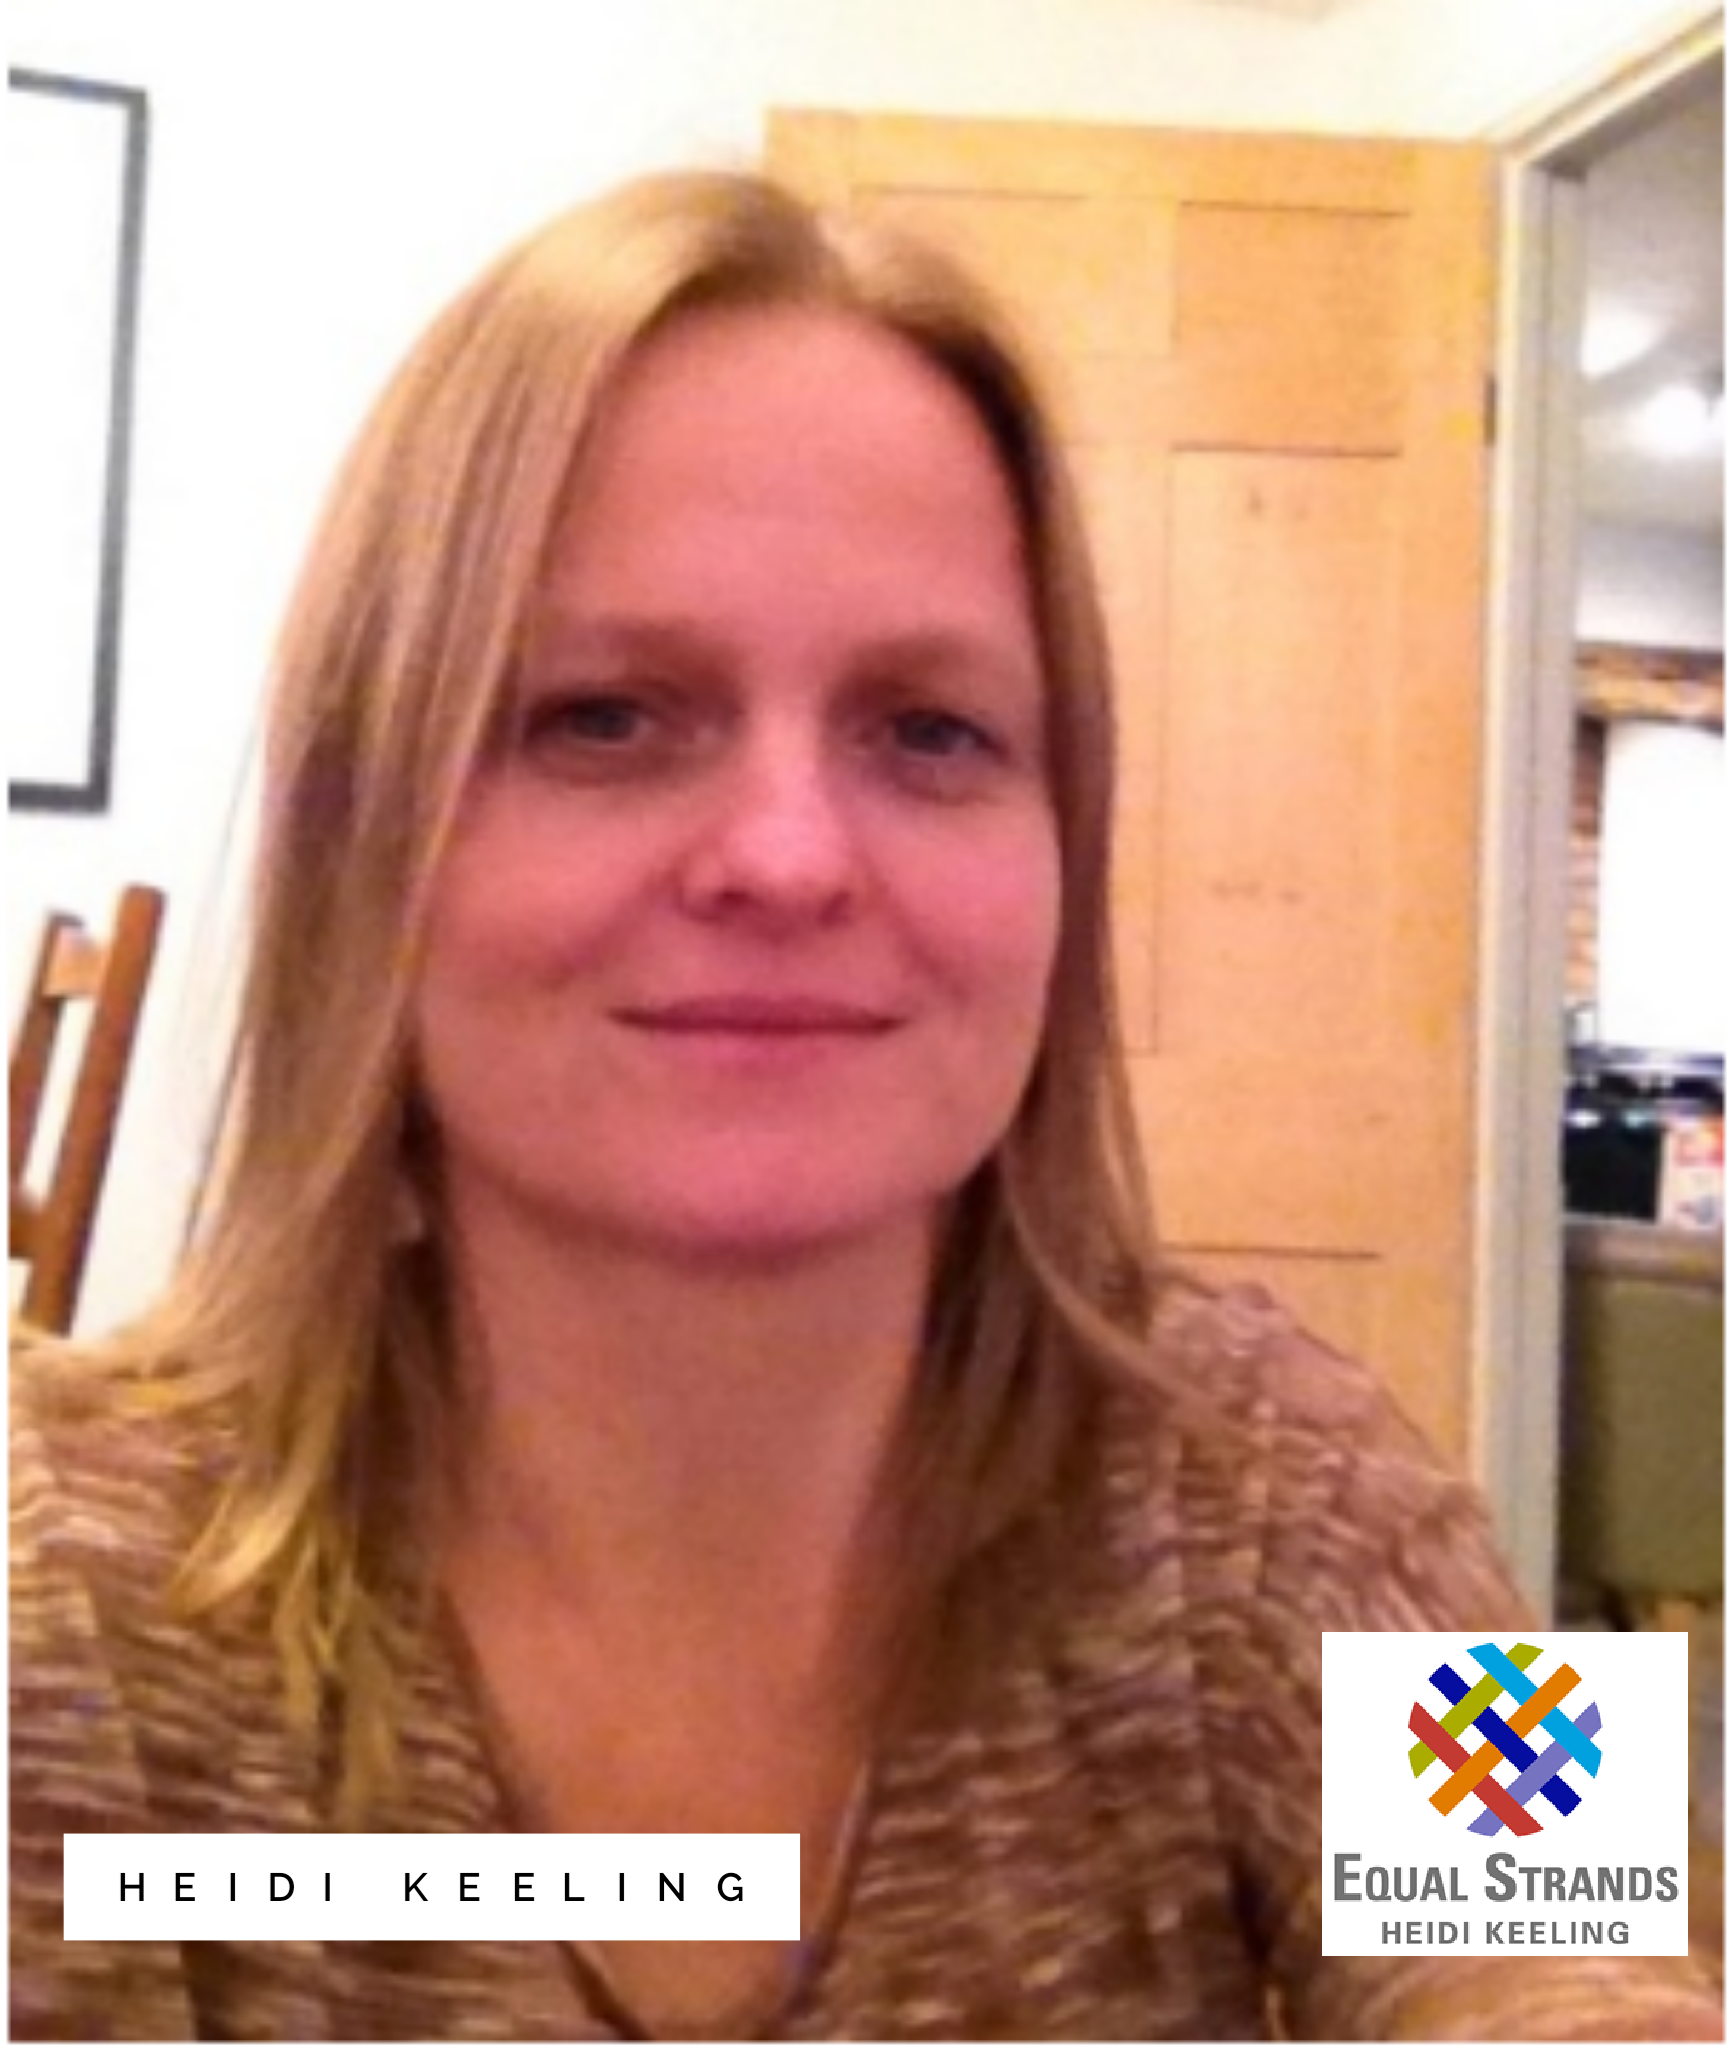 Want to hear more from Heidi? - Head over to her website: www.equalstrands.co.uk